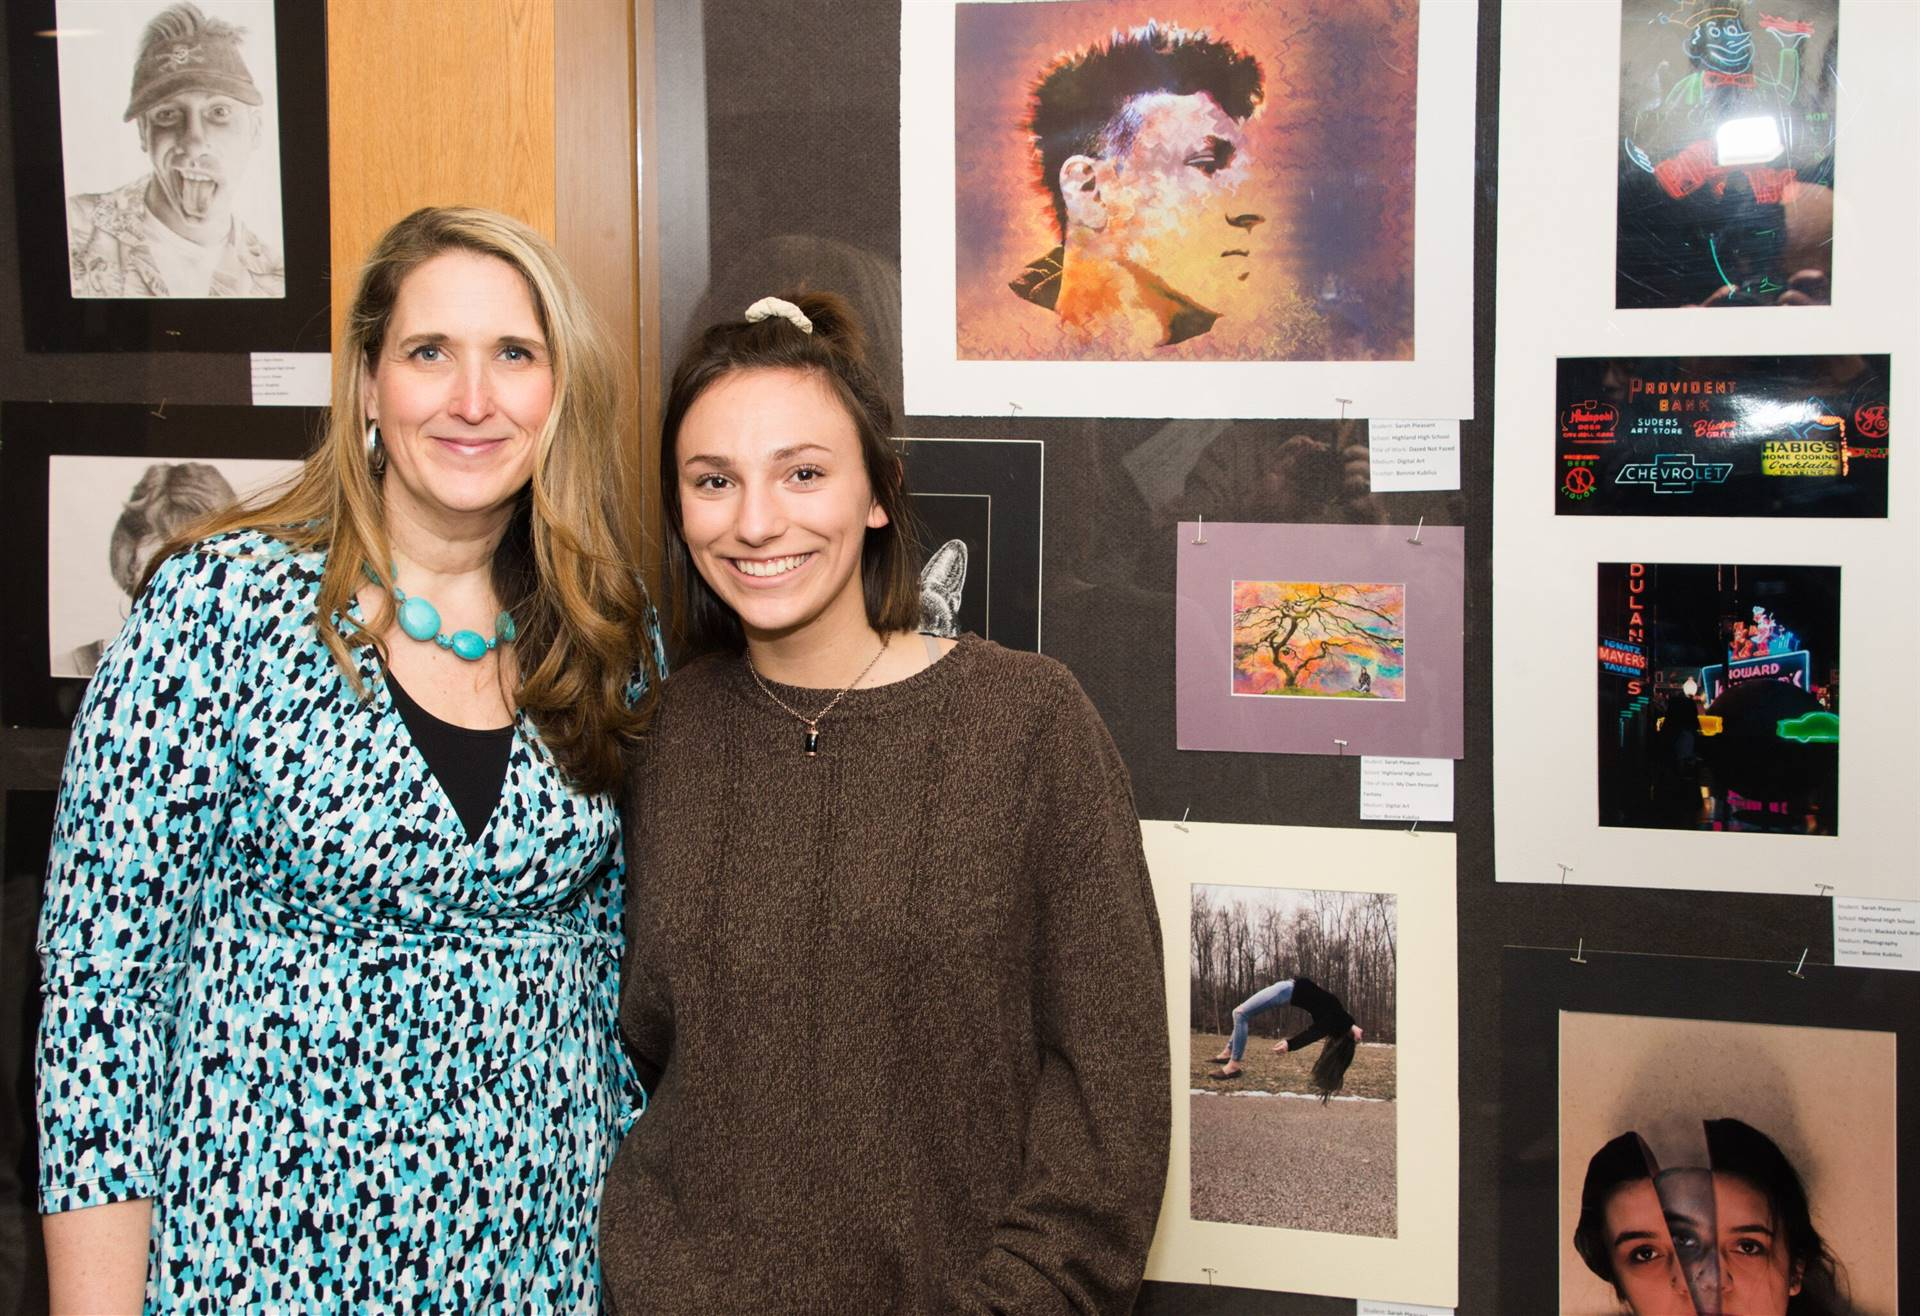 Sarah Pleasant, Second Place 2019 Non-Scholarship Portfolio Winner, with Bonnie Kubilus, art teacher